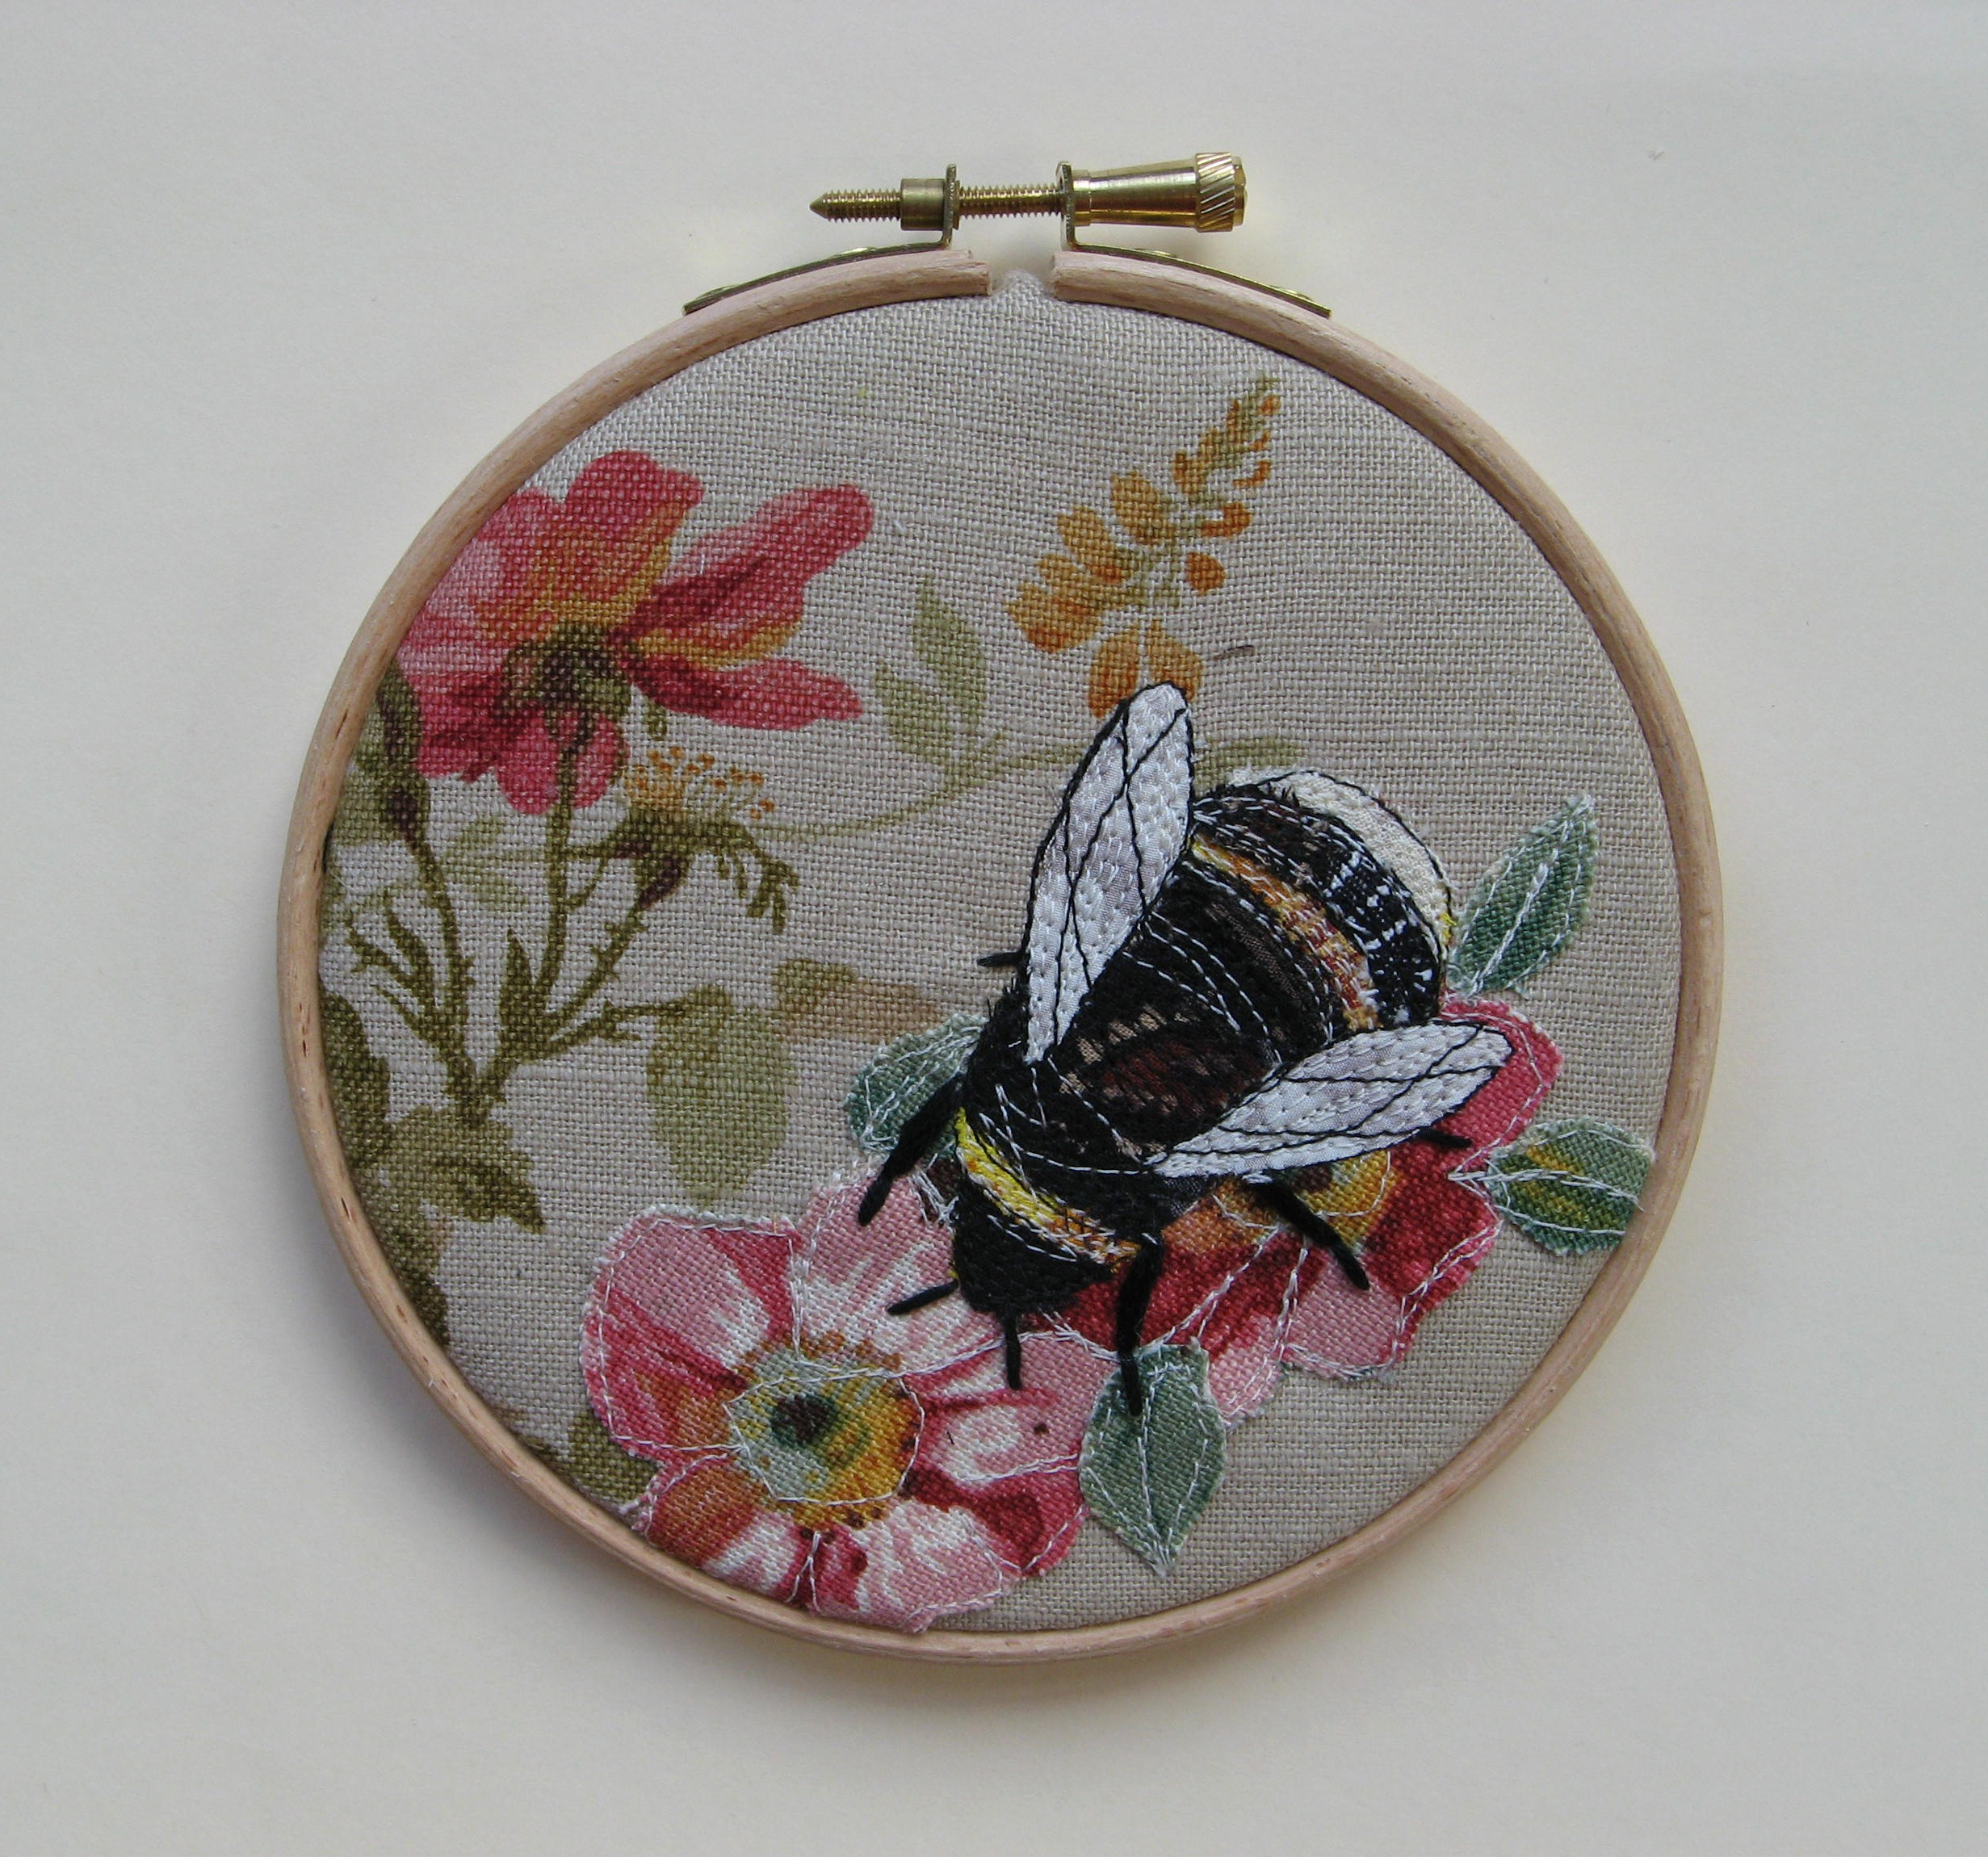 Bumble bee embroidery designs car pictures - Little Bee Embroidery 008